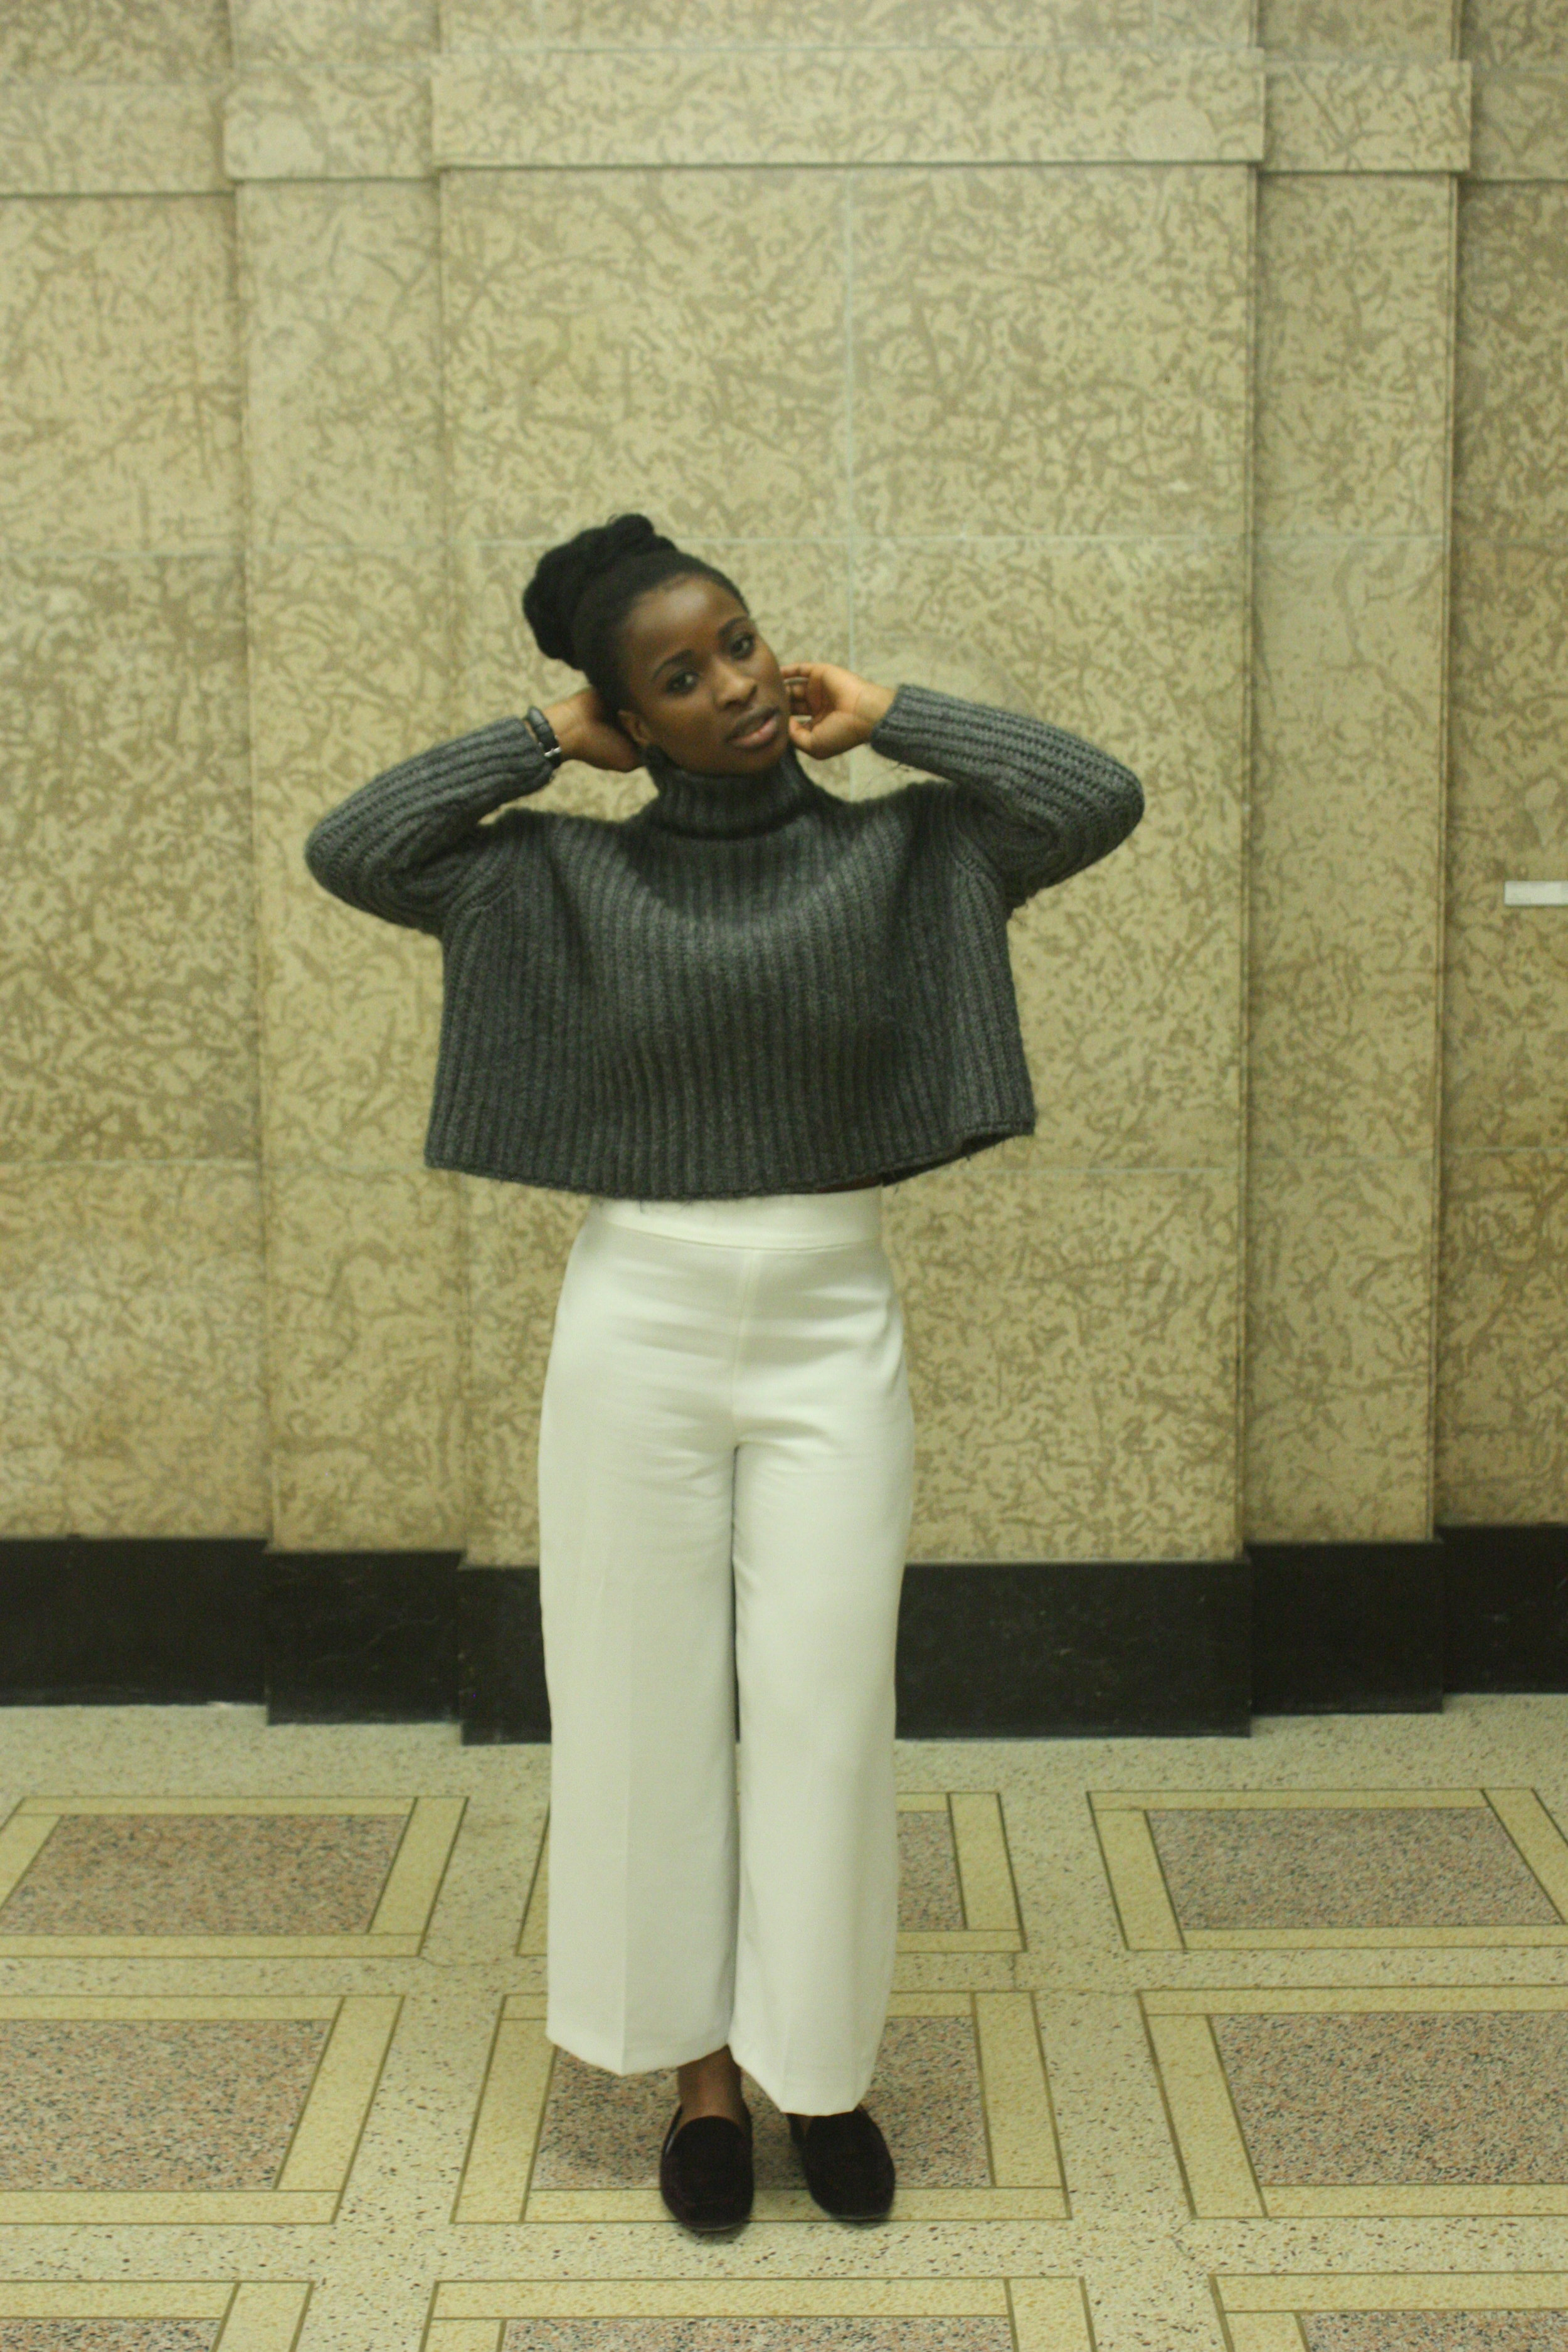 Knit Me Up (KMU) is a personal styling service based in Calgary. KMU provides practical advice and creative ways that help you integrate your personality with your style potential. Fashion is about putting your stamp of originality on each outfit.